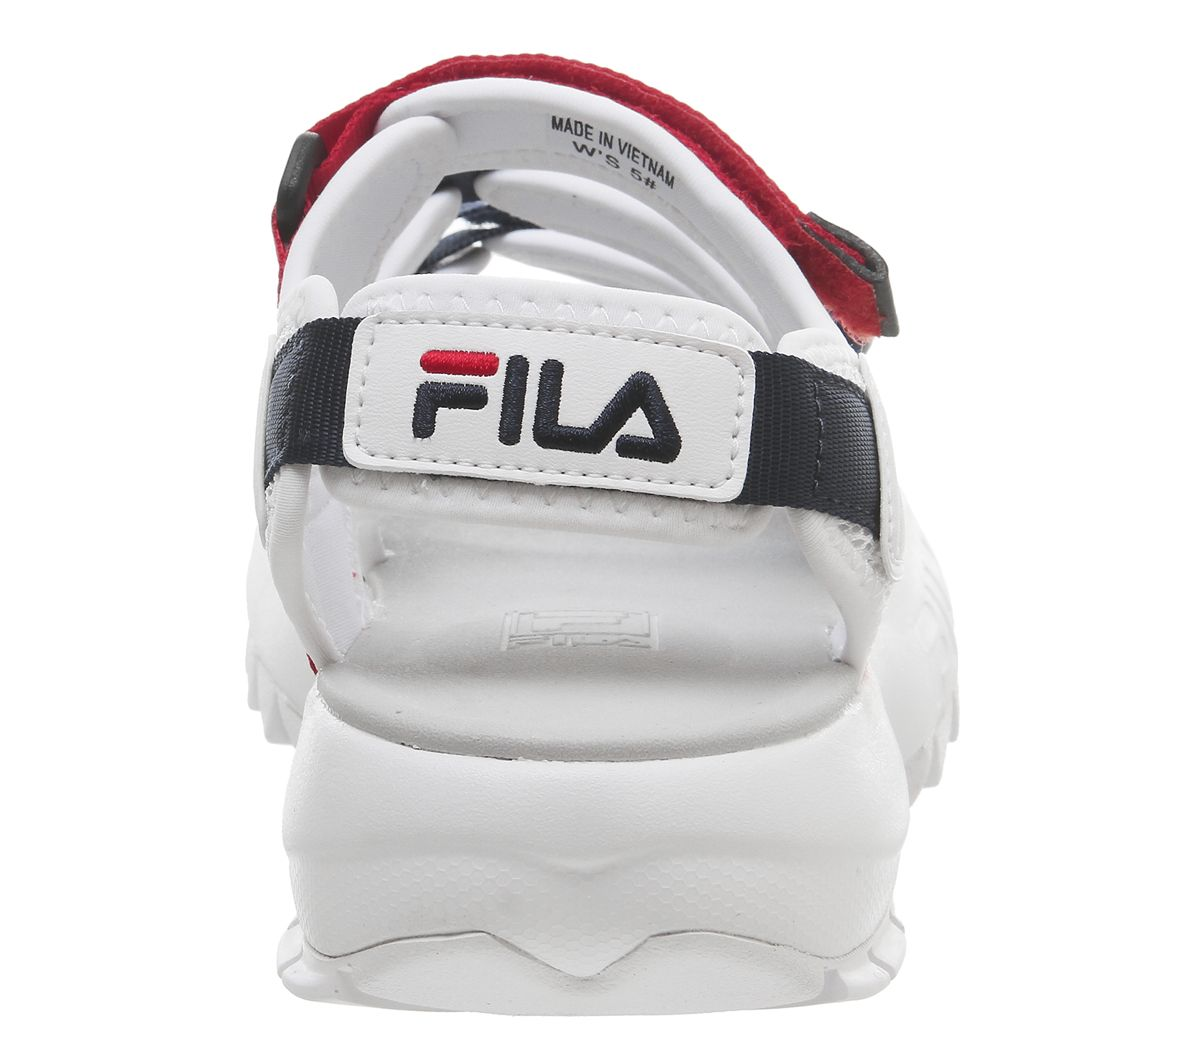 c58505cd29e Womens Fila Disruptor Sandals White Fila Navy Fila Red Sandals